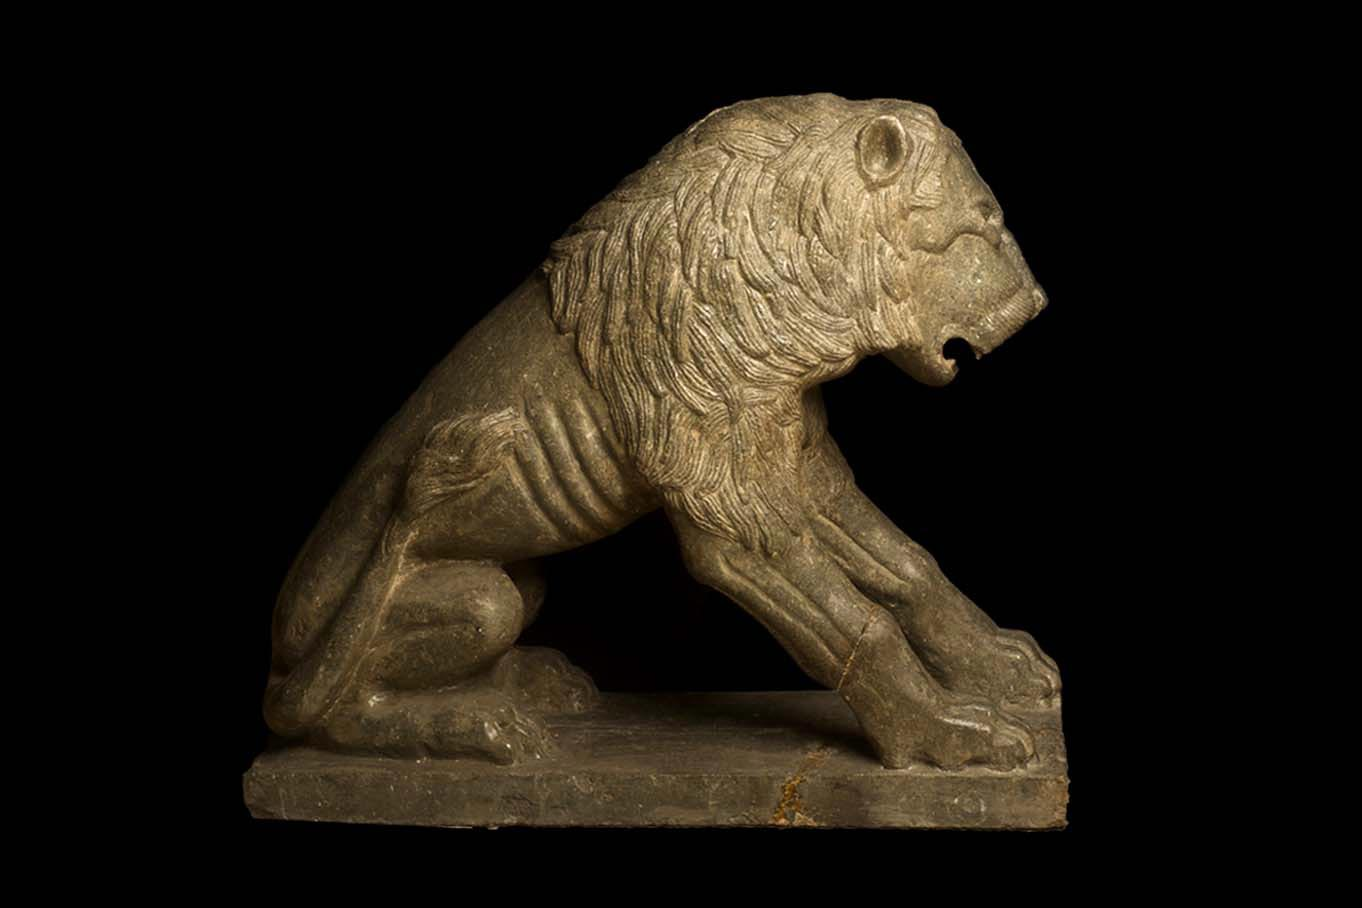 Guarding Lion from Private Collection, Medieval Art, 13th Century